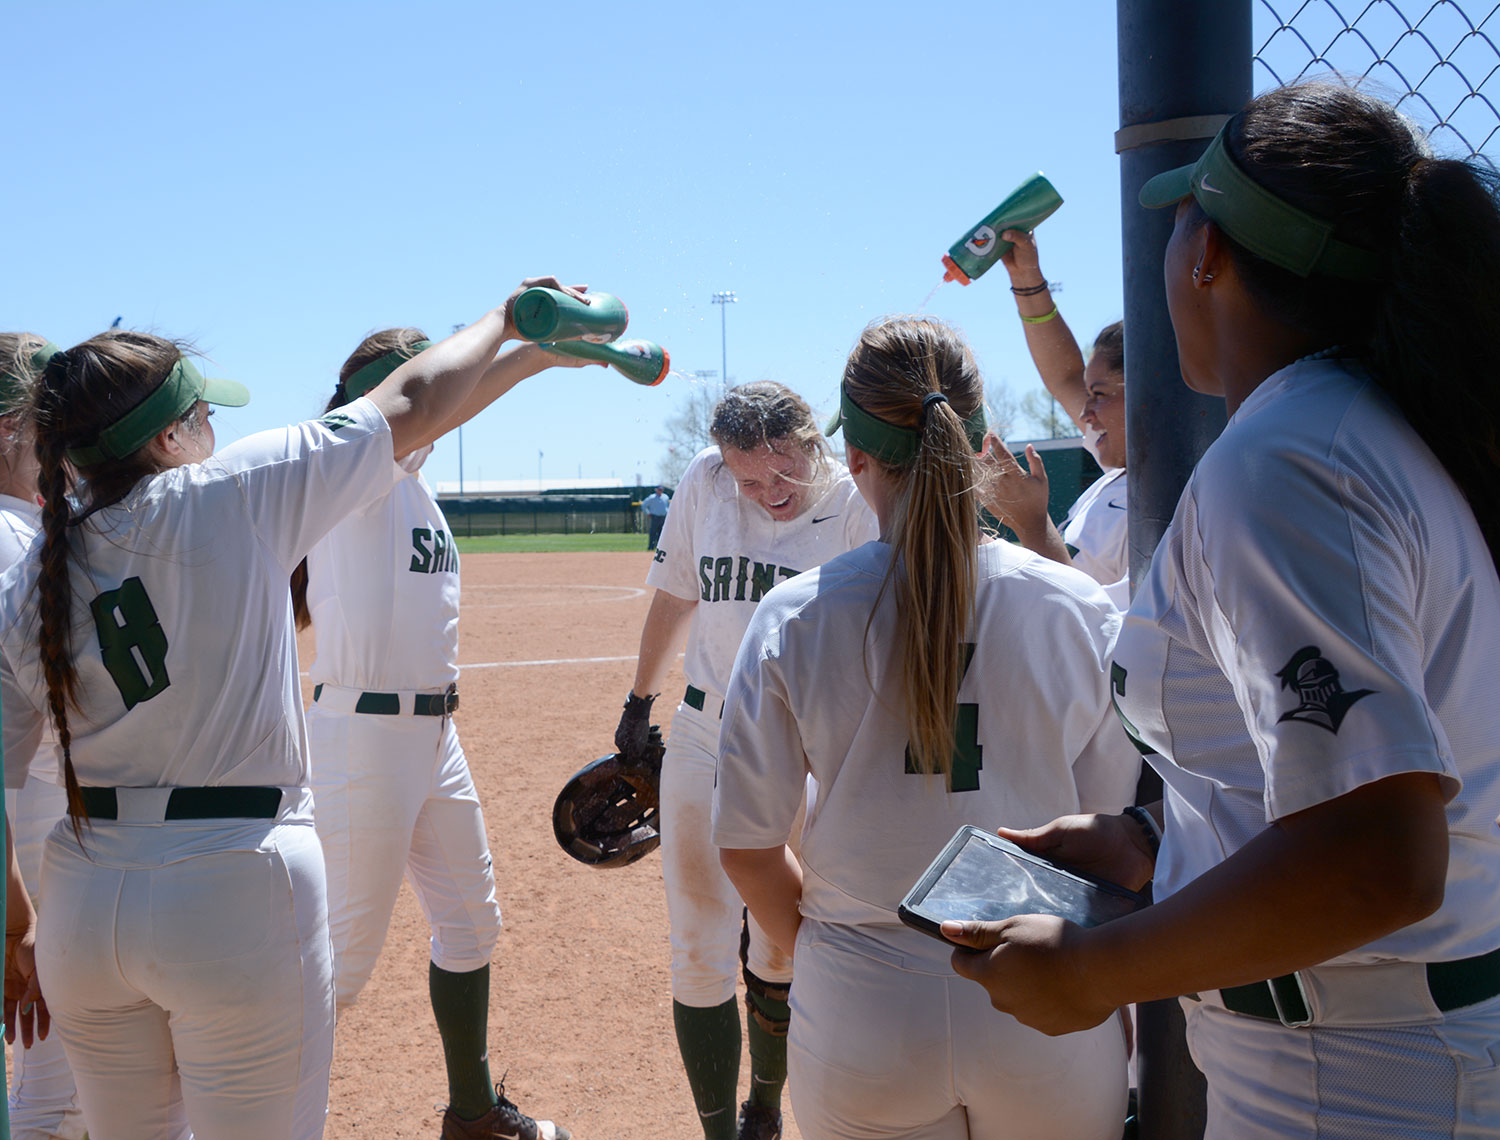 Jaci+Oakley+is+greeted+by+teammates+with+a+dousing+of+water+after+hitting+a+homerun+against+Northwest+Technical+College.